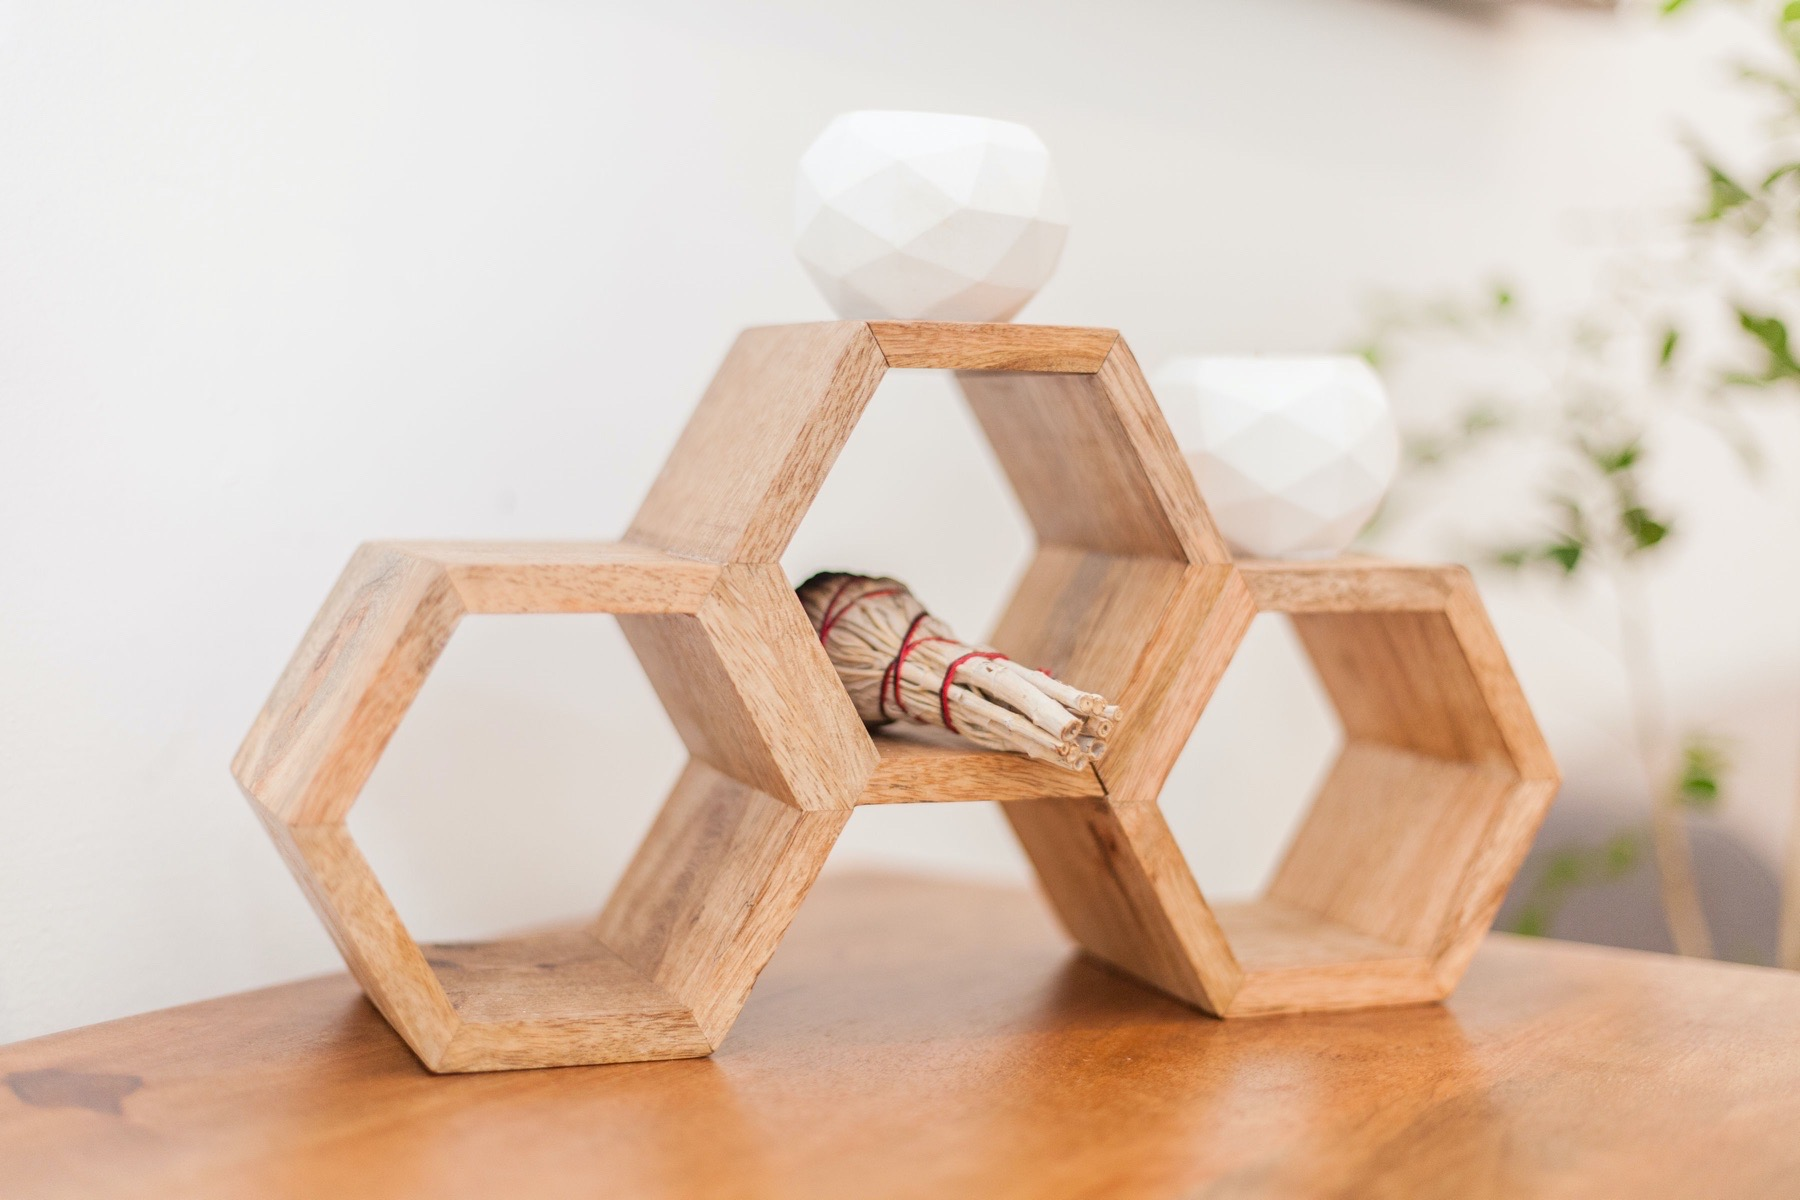 Three part hexagonal structure with candle and burning sage.